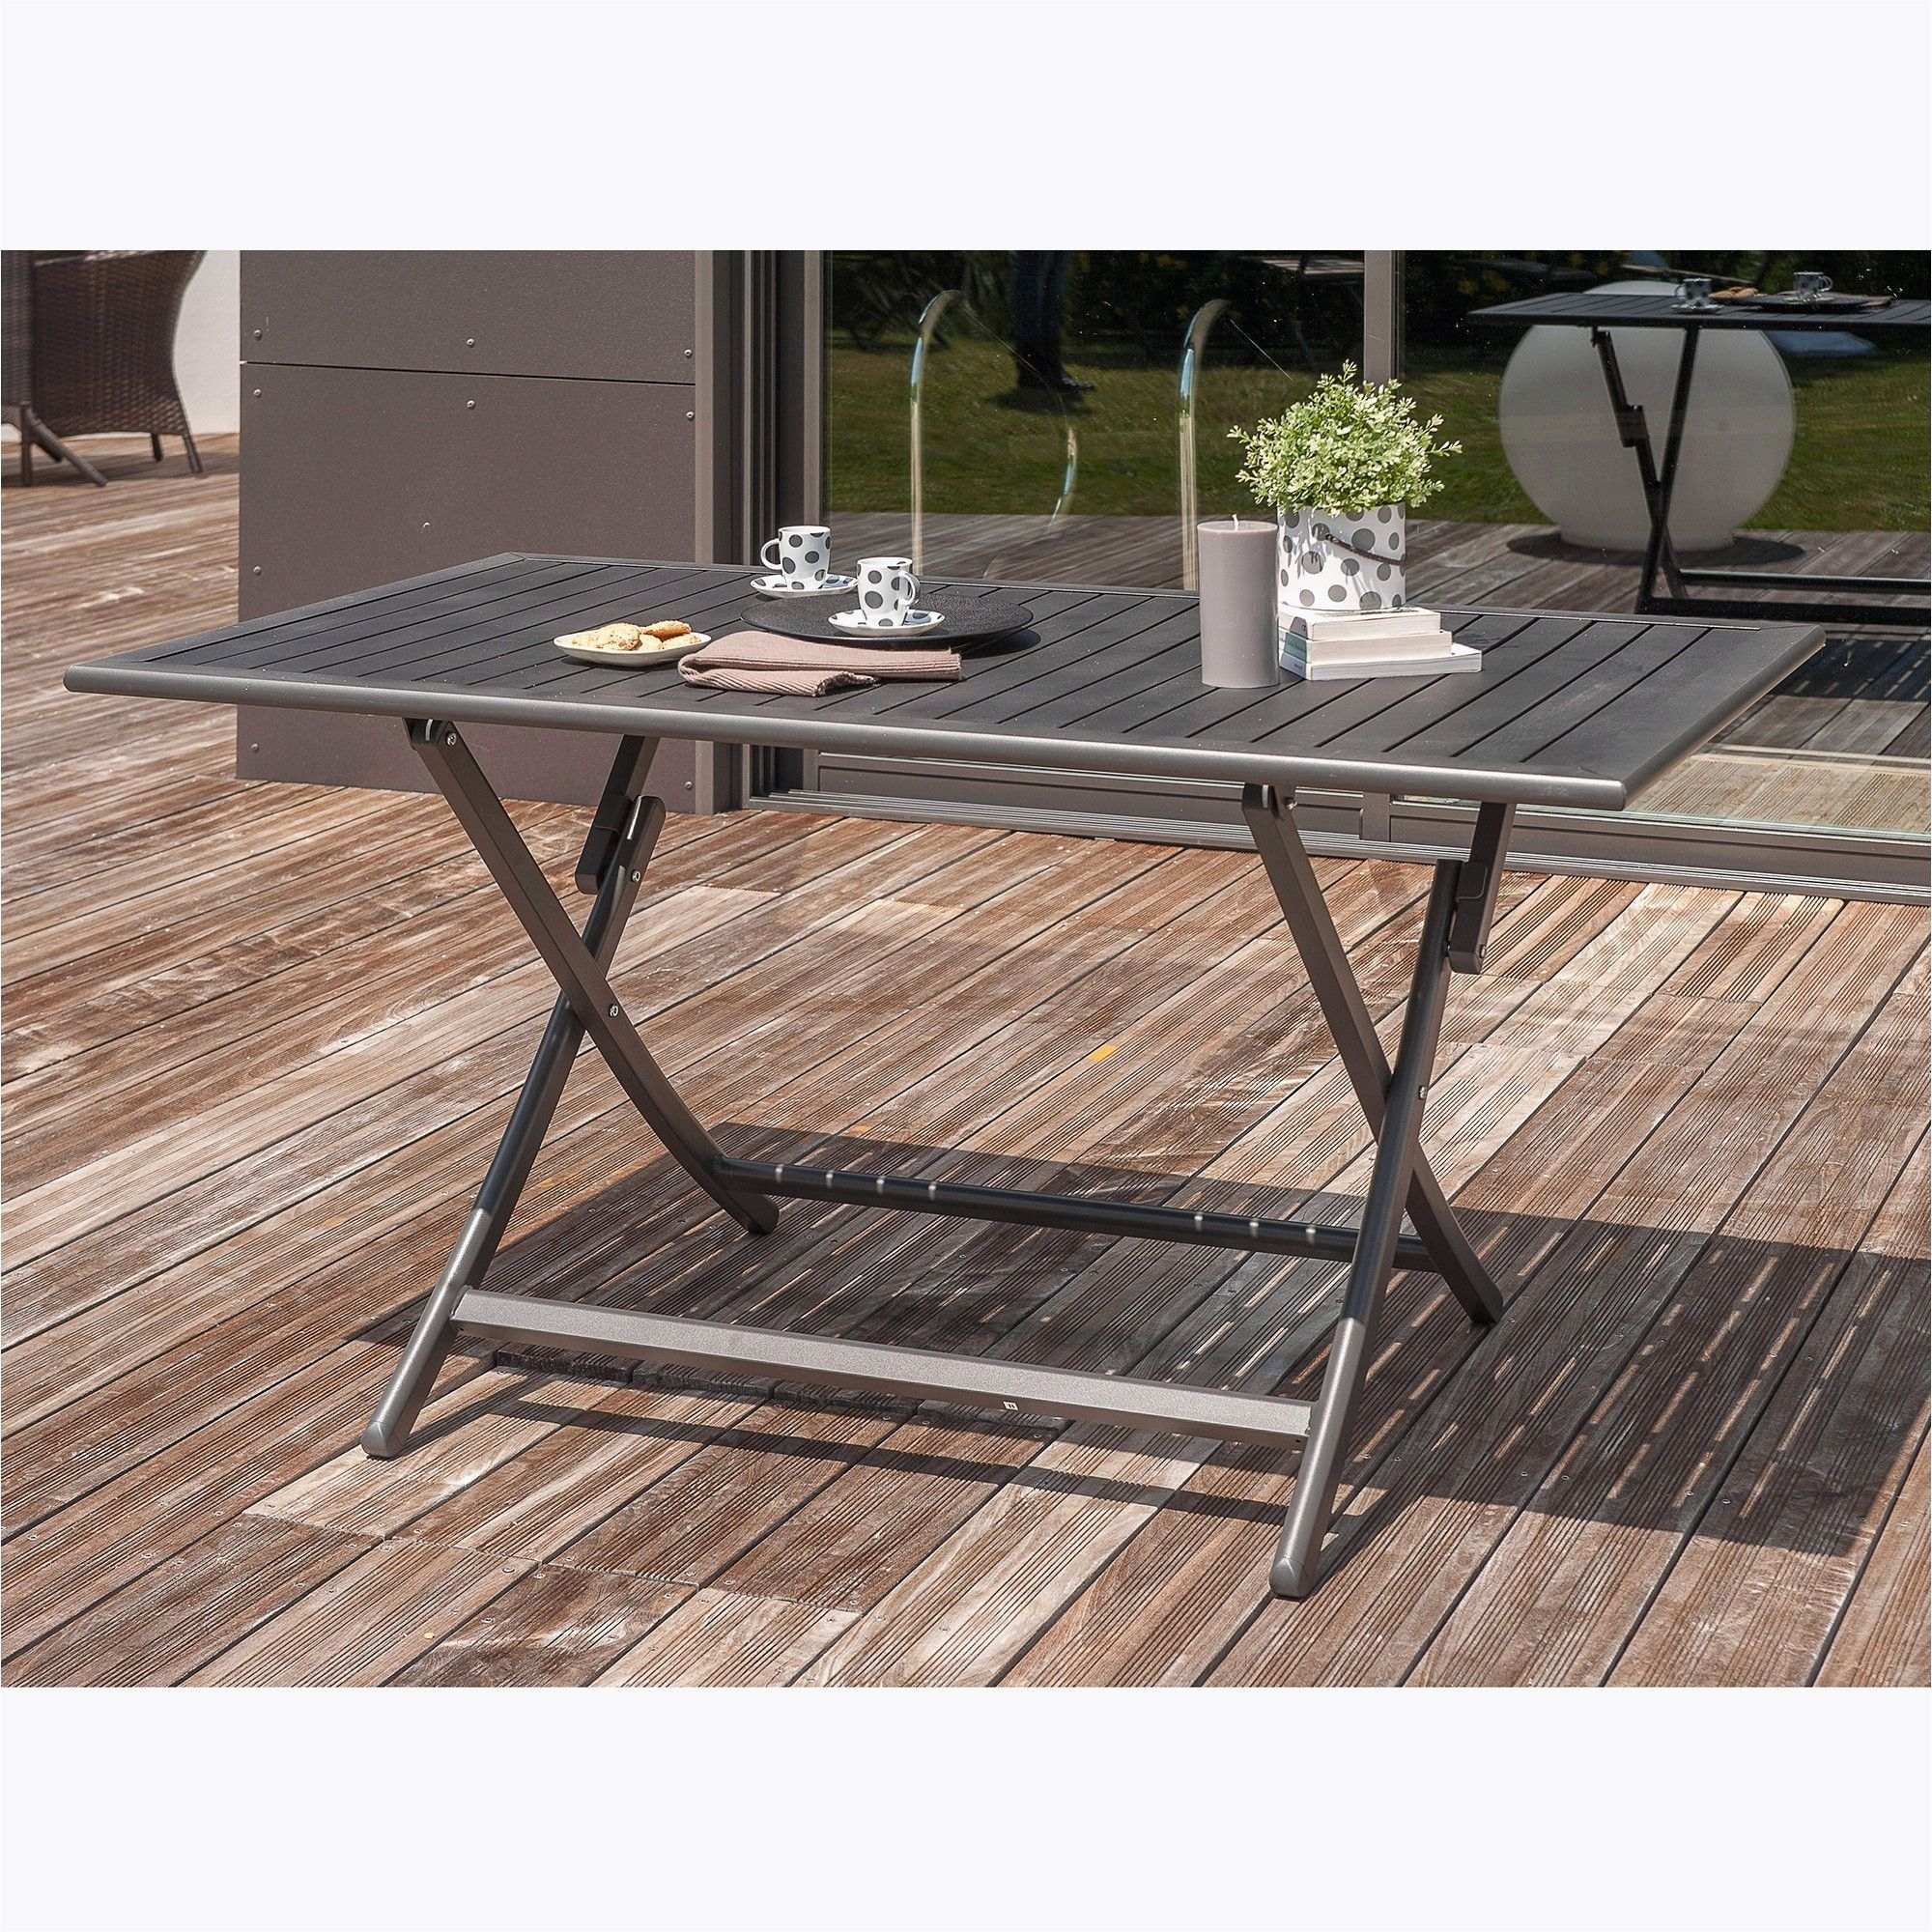 Salon Jardin Rotin Luxe Table Pliante Leclerc Beau S Leclerc Table De Jardin Of 35 Best Of Salon Jardin Rotin